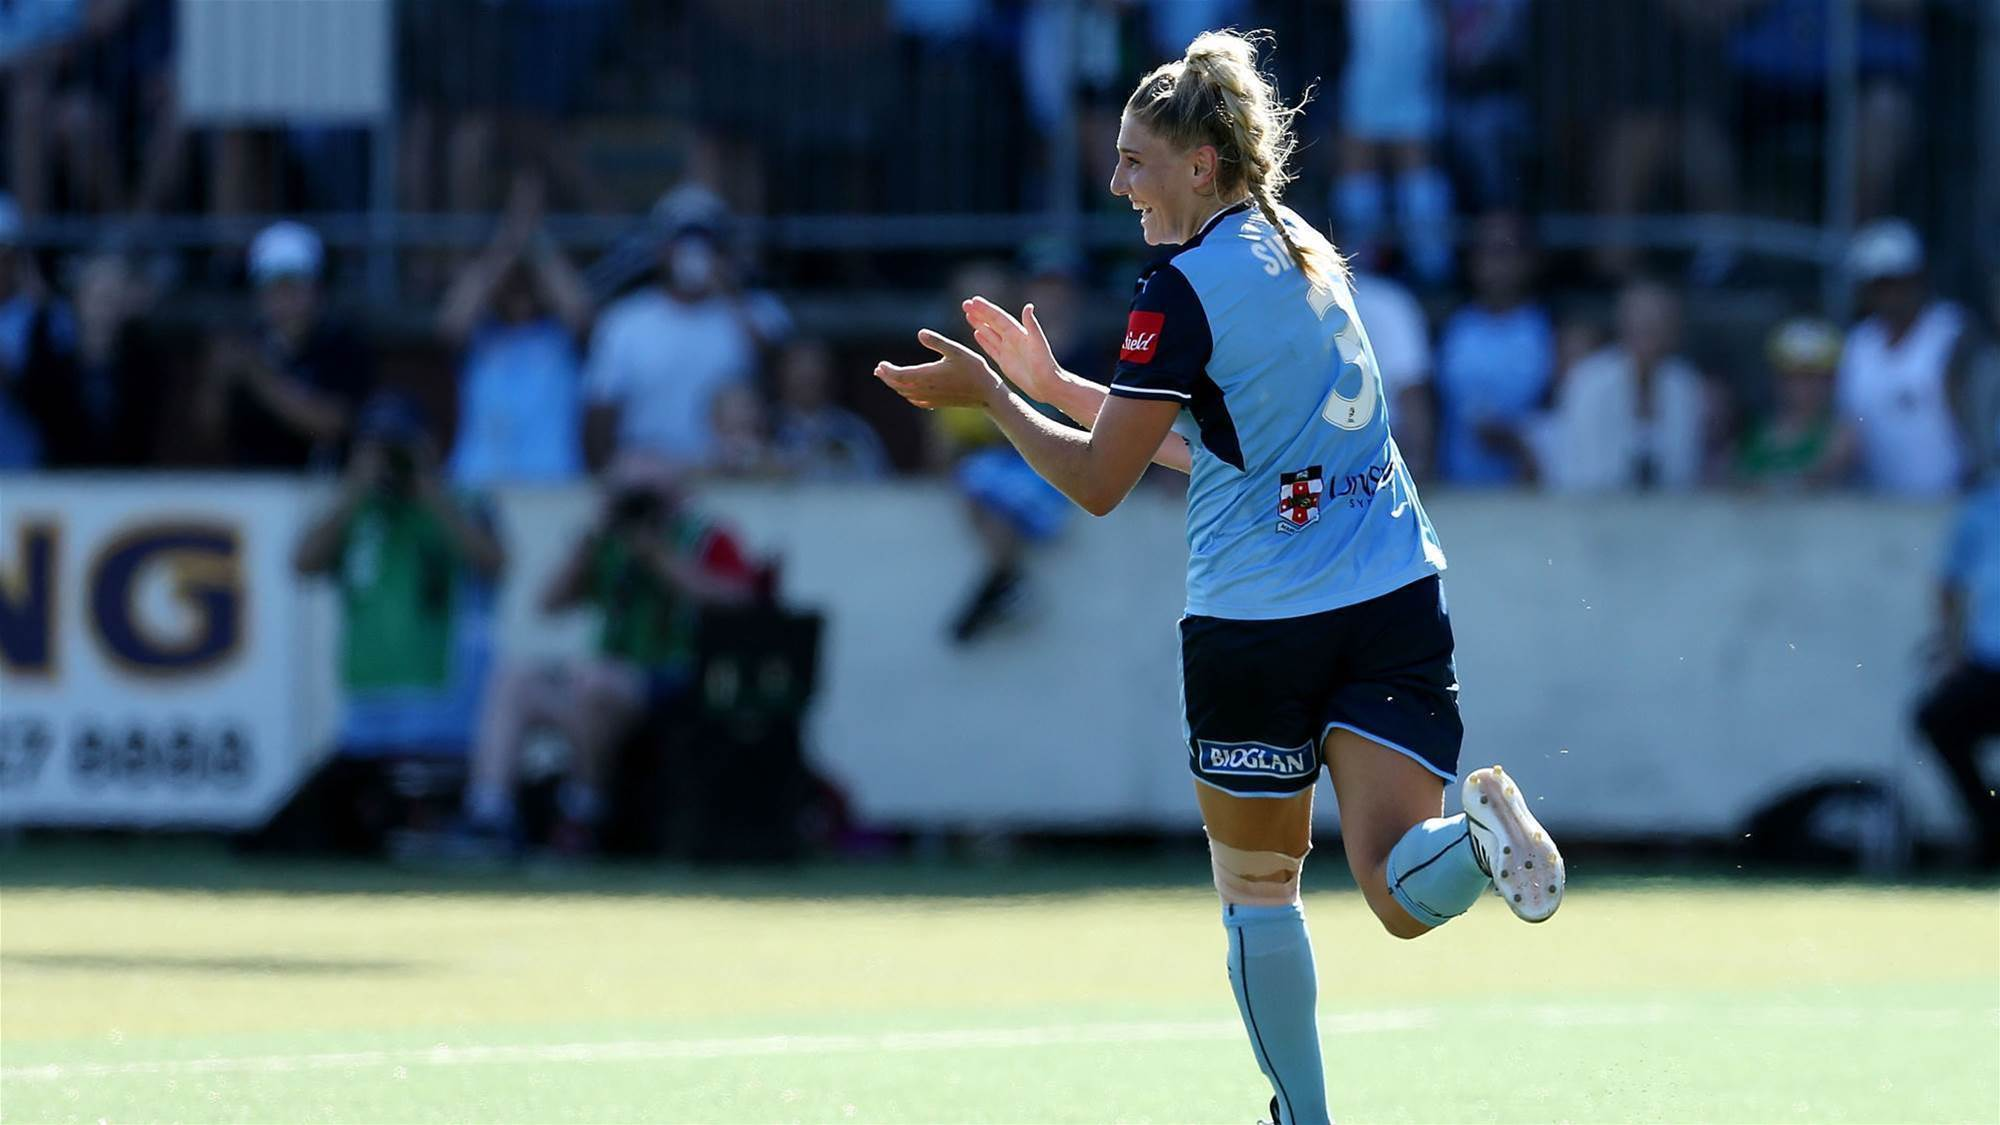 Siemsen heading to WPSL